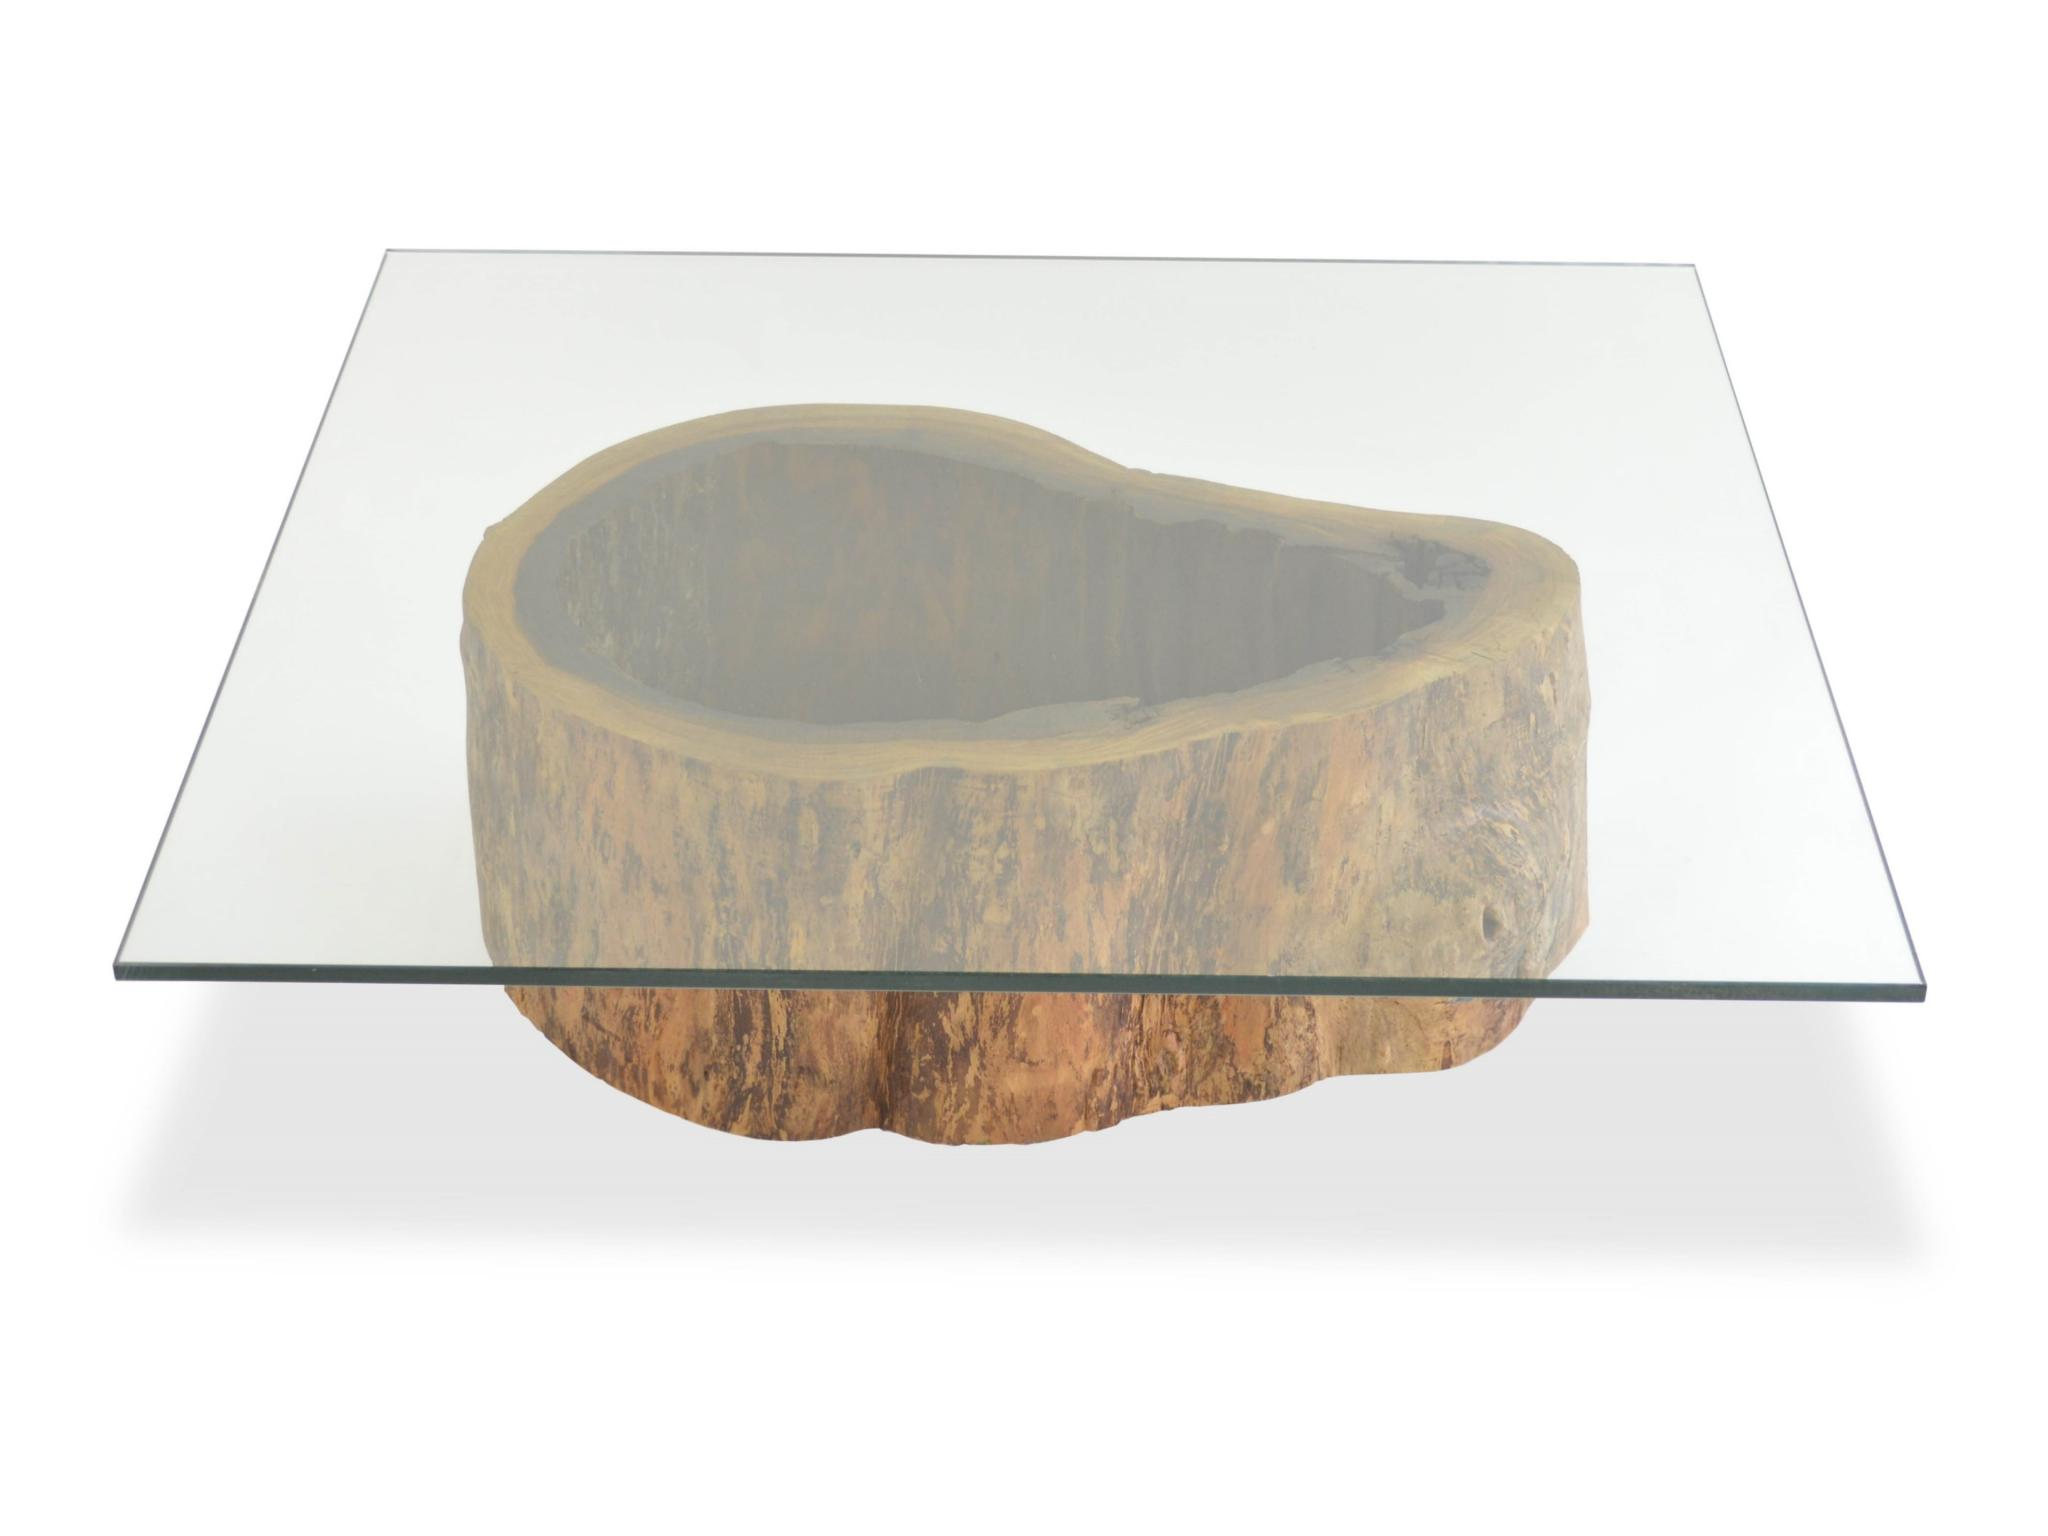 Rotsen-Furniture-Salvaged Hollow Trunk Coffee Table - Square Glass Top Rotsen 01